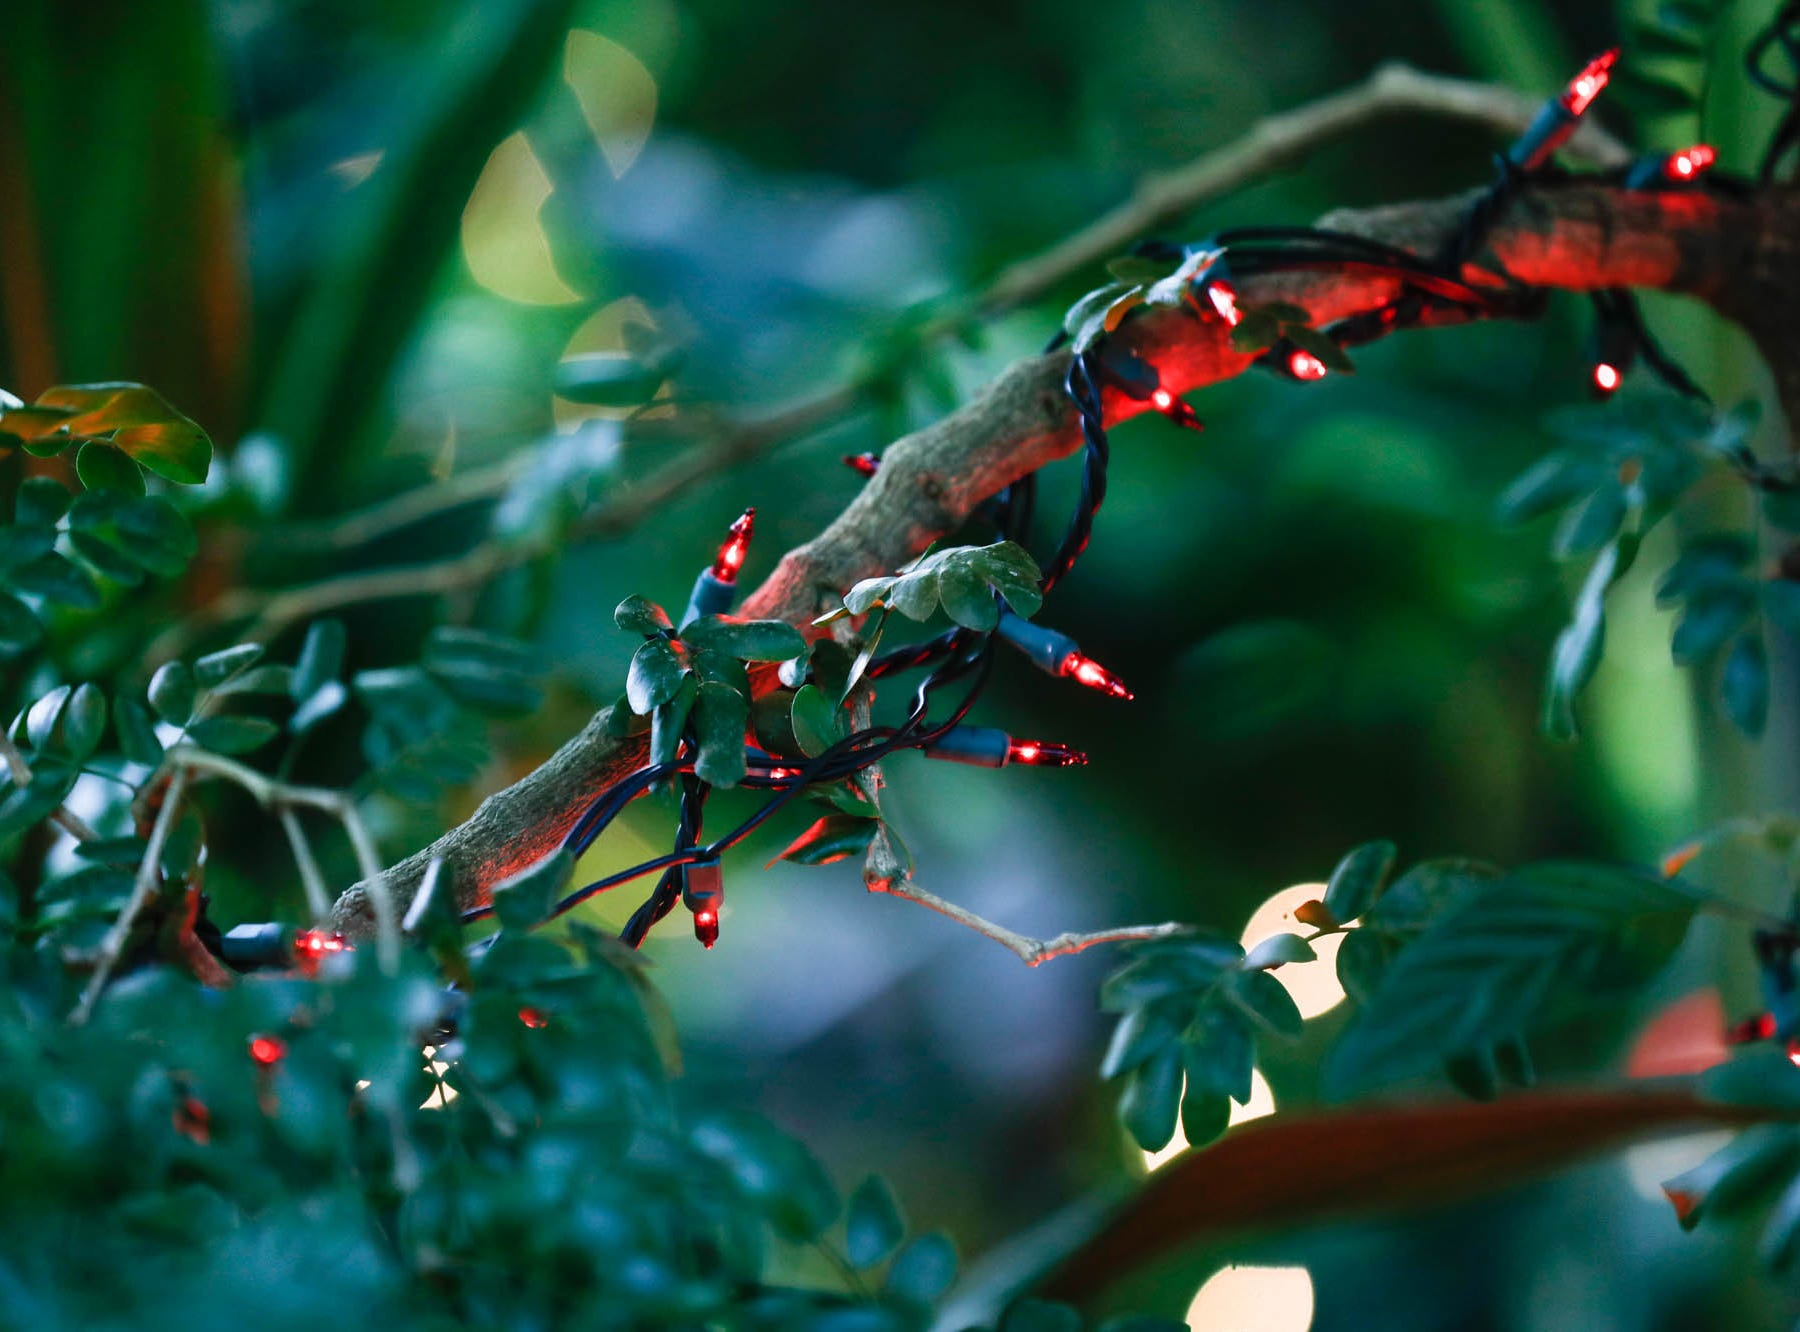 Christmas lights decorate a tropical tree in the Conservatory Crossing holiday display at the Garfield Park Conservatory on Saturday, Dec. 29, 2018.